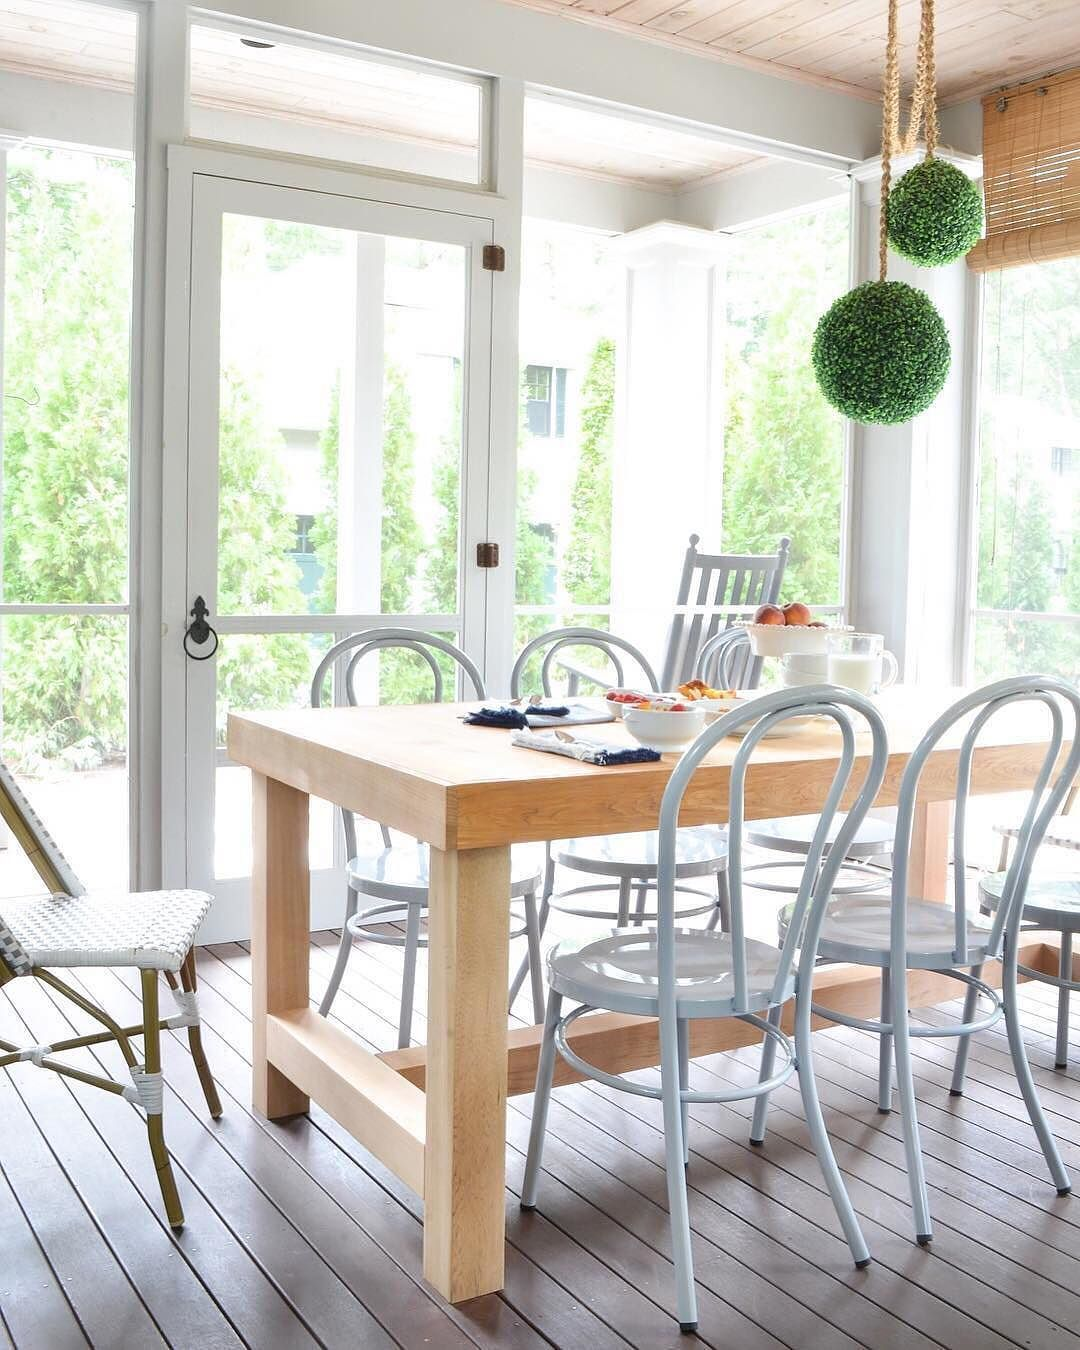 Free Building Plans For This Diy Chunky Farmhouse Table Modeled After A Restoration Hardware Dining